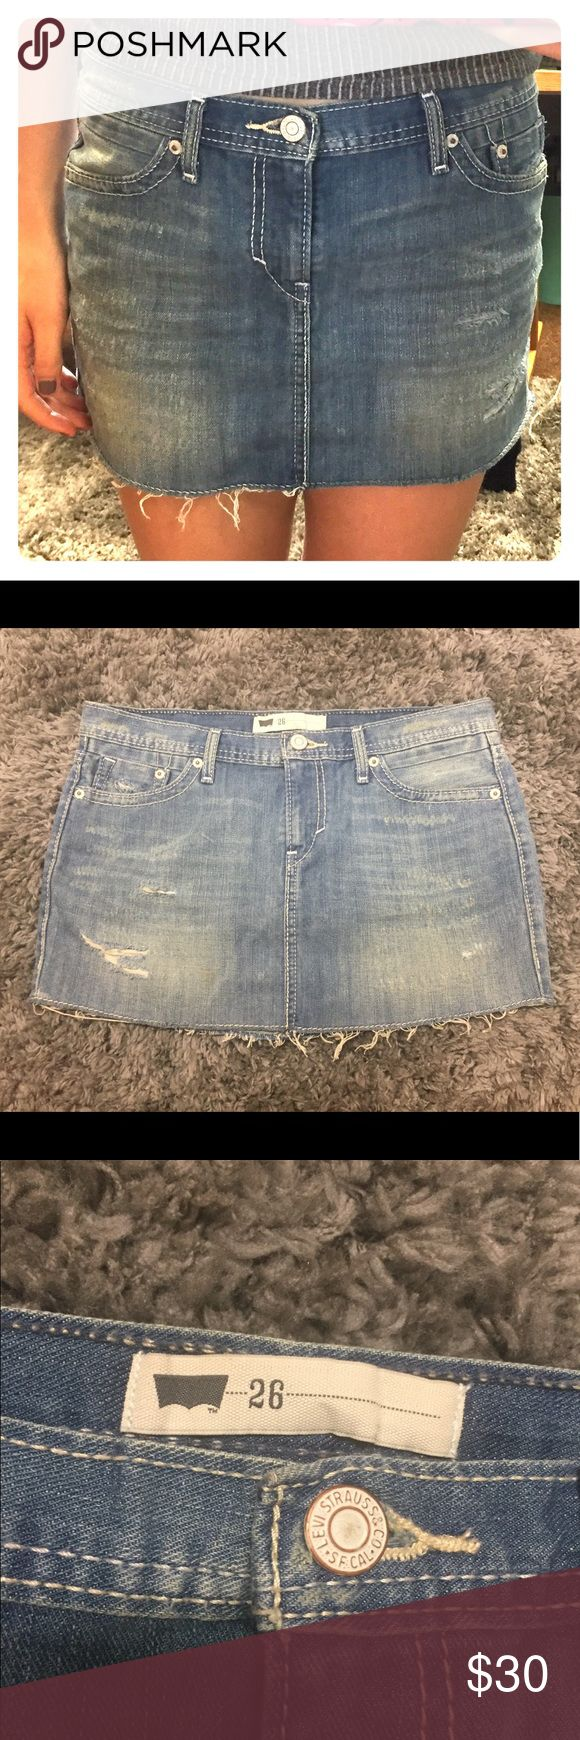 LEVI'S denim mini skirt vintage style Condition: perfect! Worn only once, didn't suit my style. Zipper, seams, distressed detailing is all in perfect condition Features: vintage look with distressed detailing Color: lightwash denim Fit: hugs hips comfortably Can be worn edgy or girly or anywhere in between! Levi's Skirts Mini